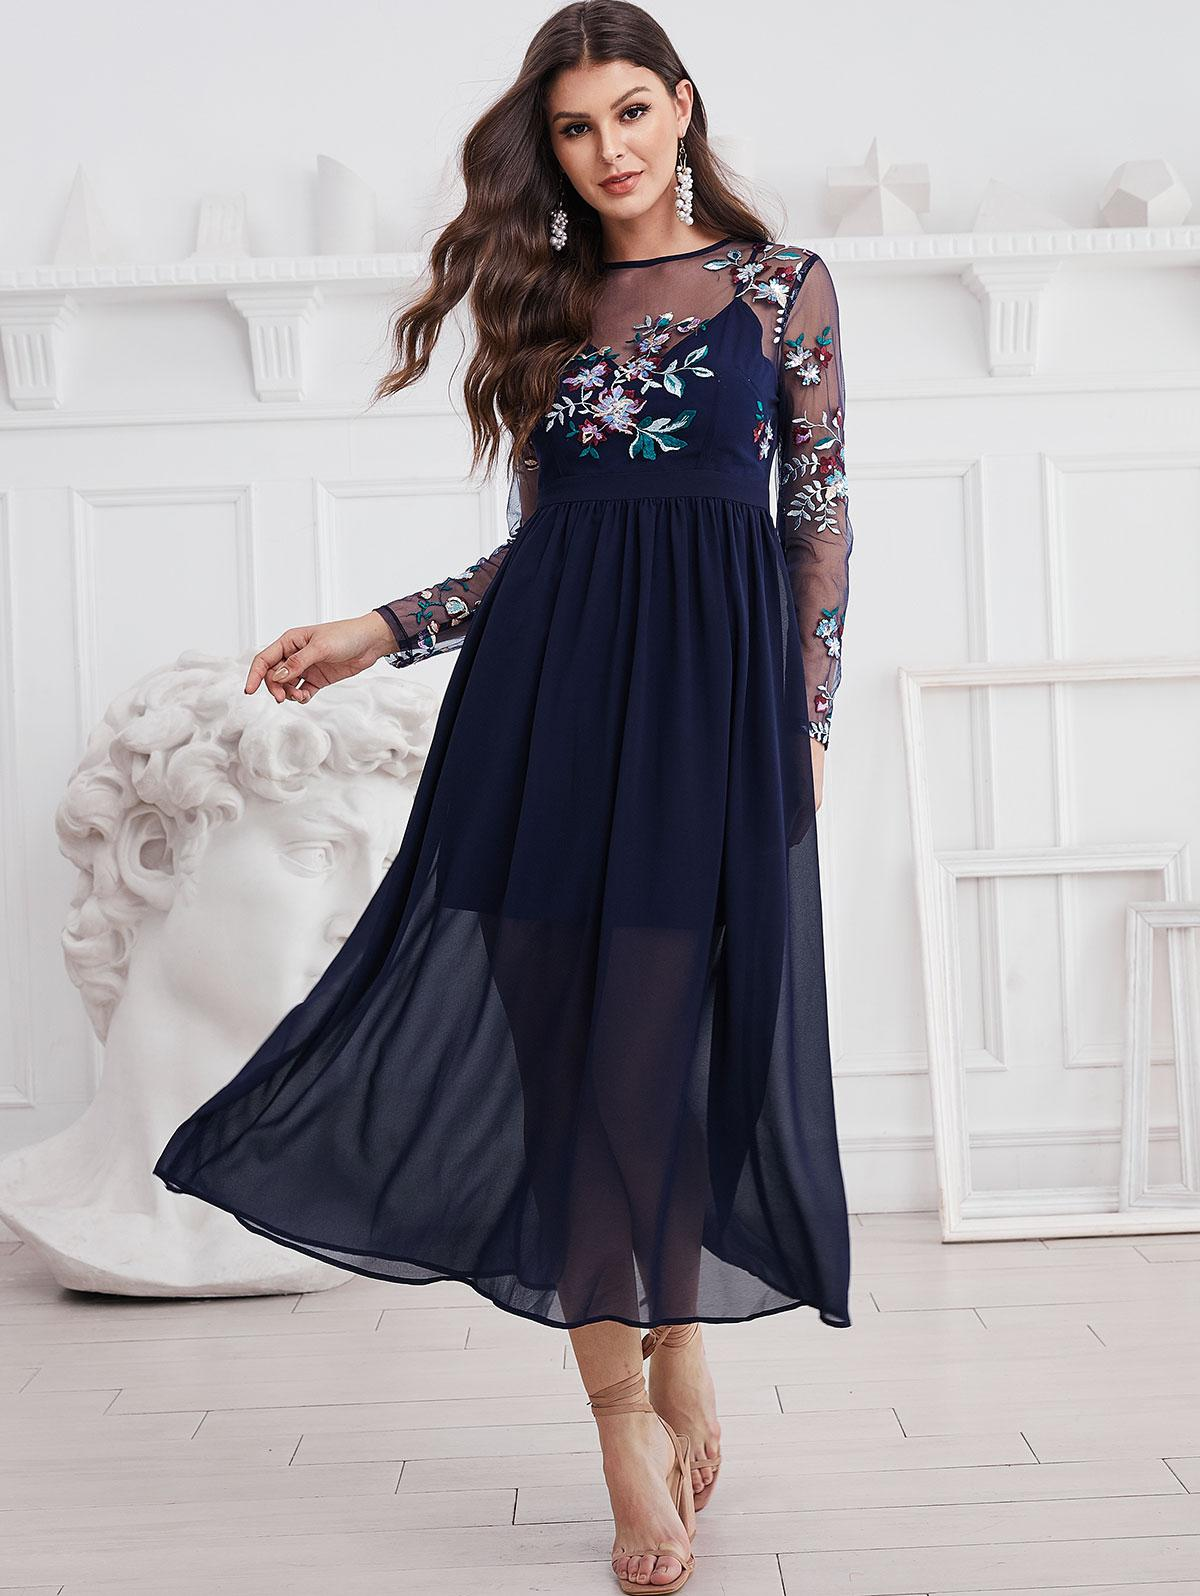 ZAFUL Long Sleeve Embroidered Sequined Sheer Mesh Panel Dress, Midnight blue